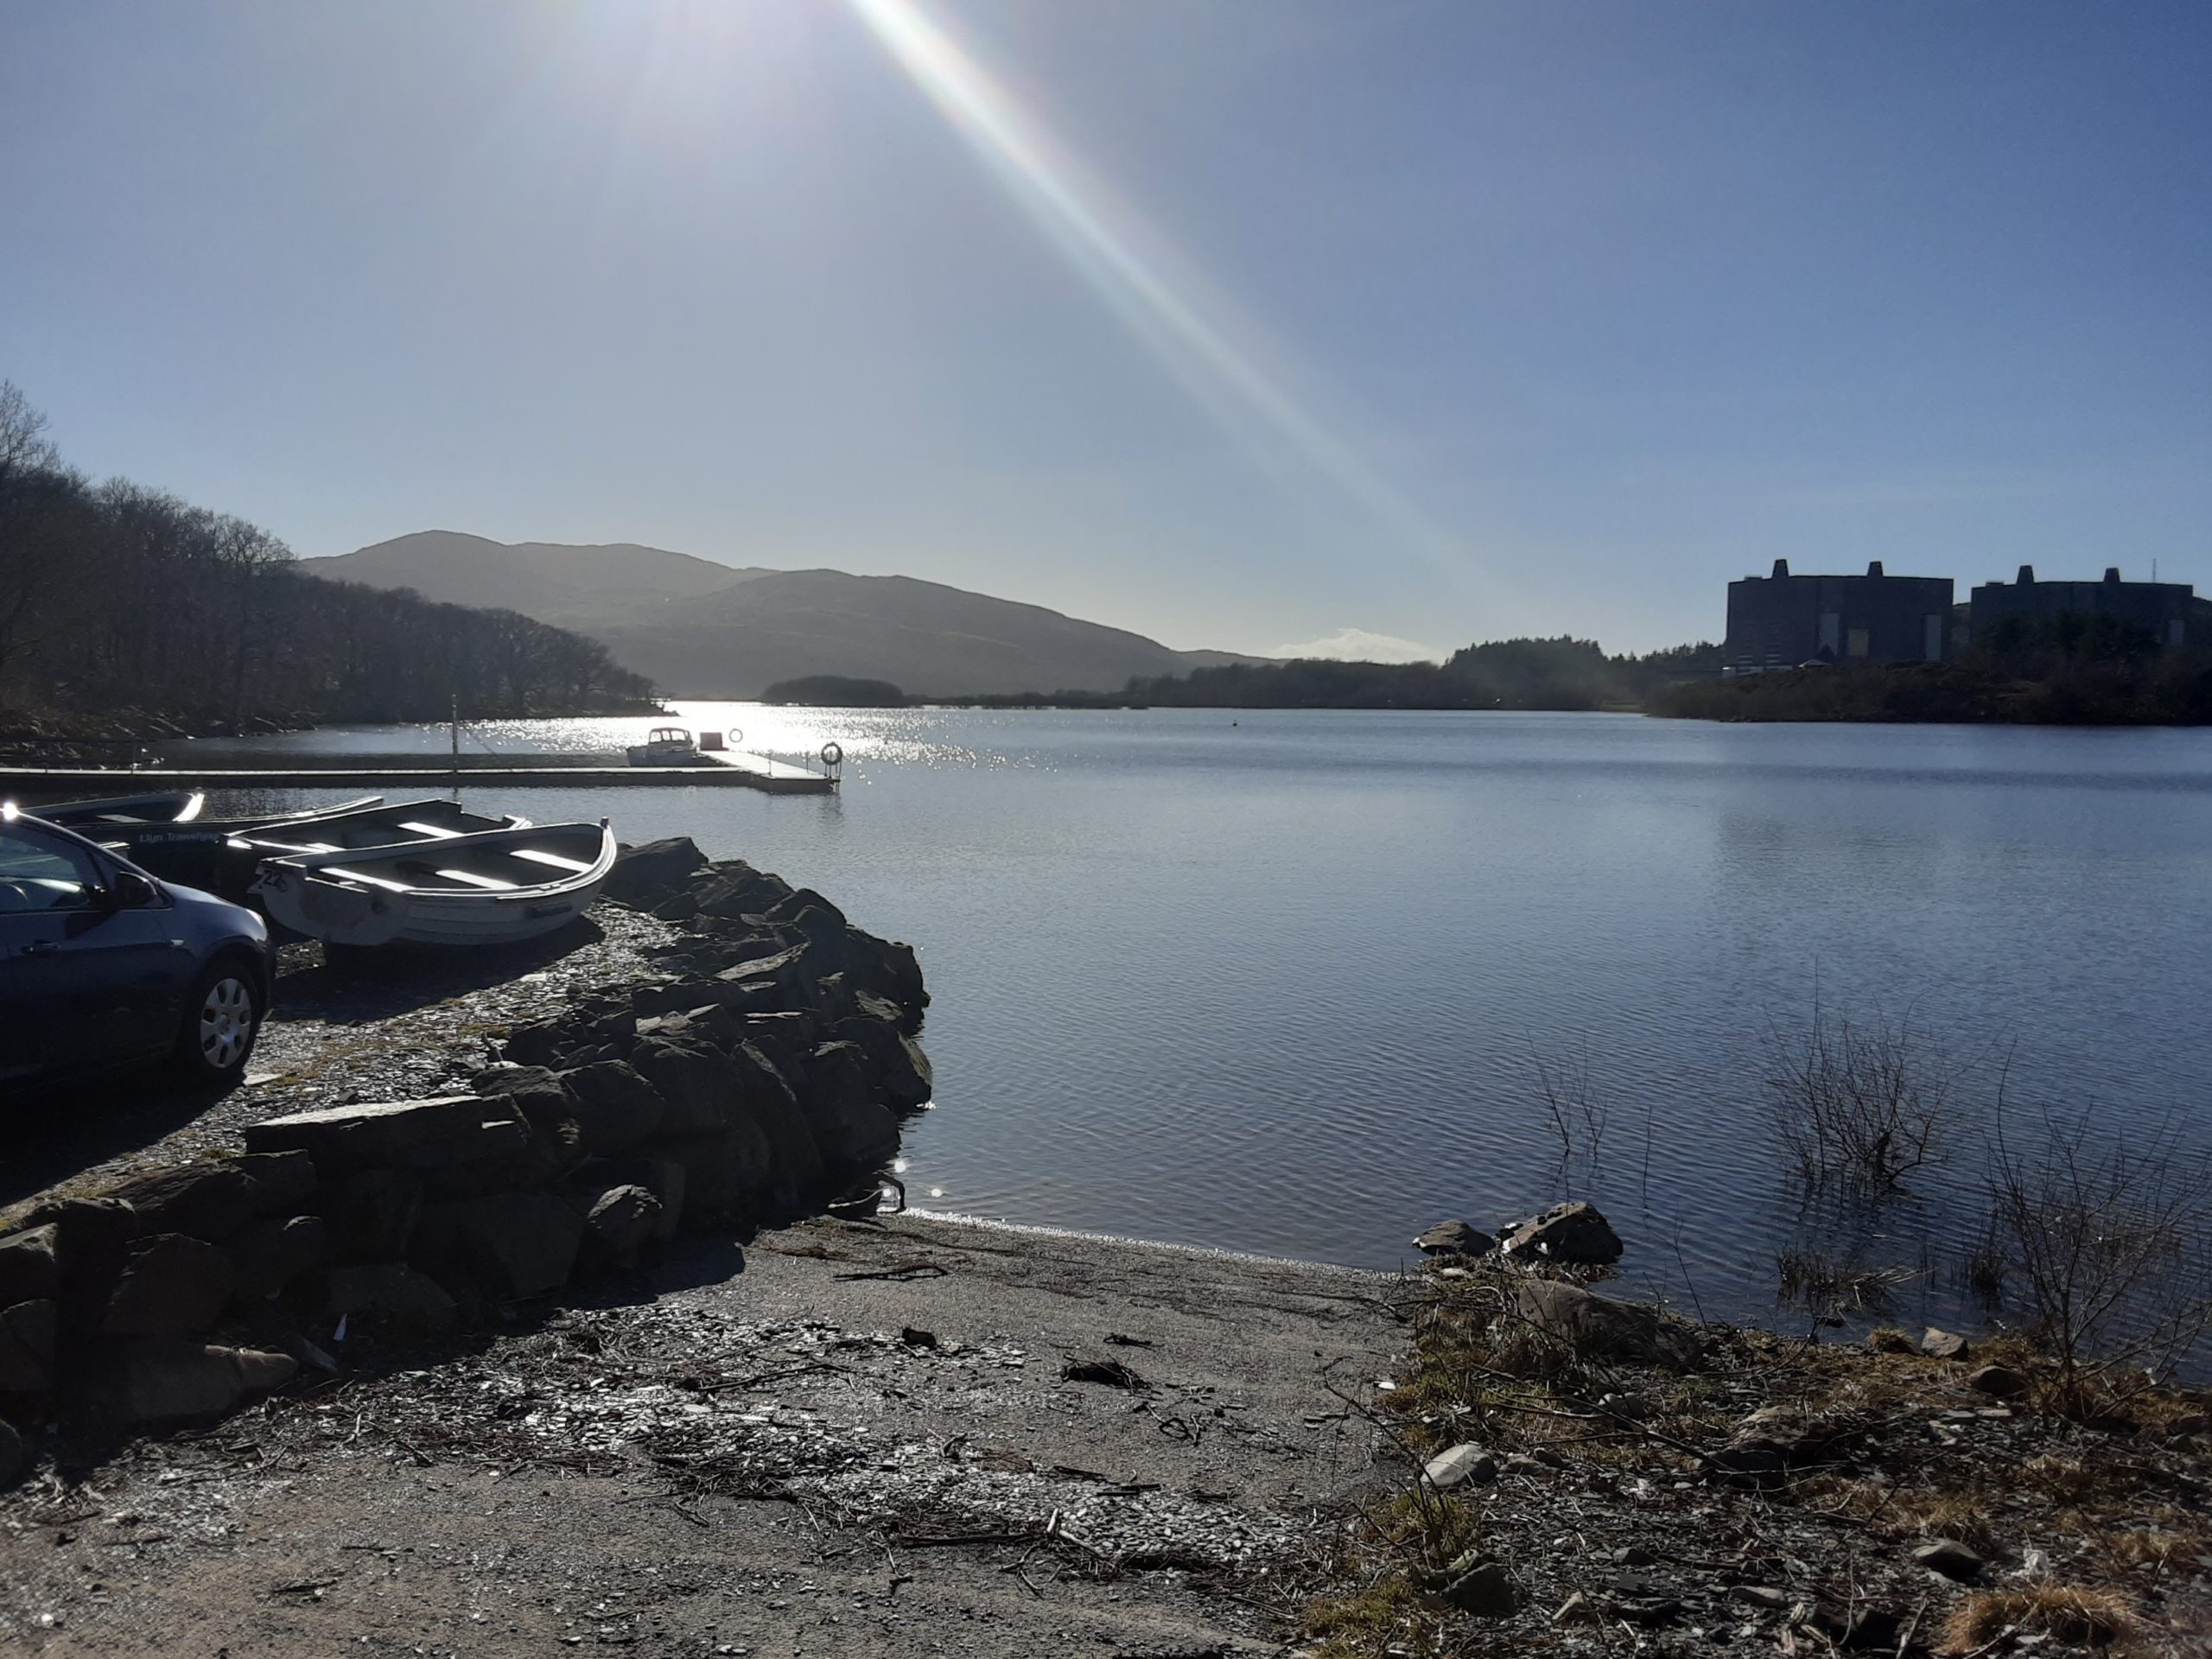 The beautiful sunny view on Trawsfnydd Lake in North Wales, as our engineers were on their way to an install.